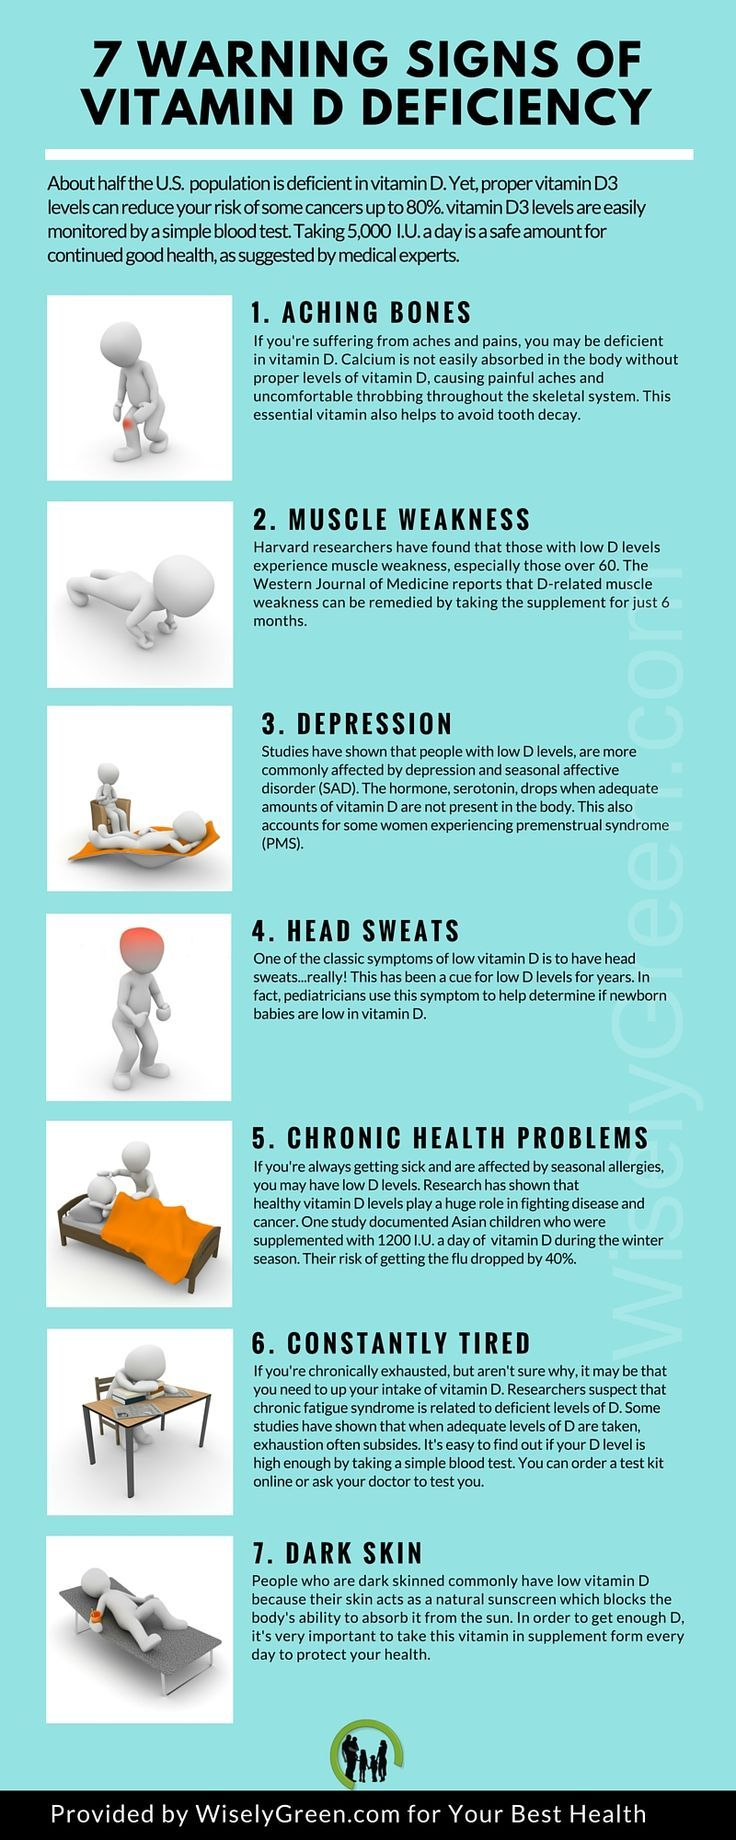 7 Warning Signs of #VitaminD Deficiency >> Get more info at http://wiselygreen.com/7-warning-signs-of-vitamin-d-deficiency/